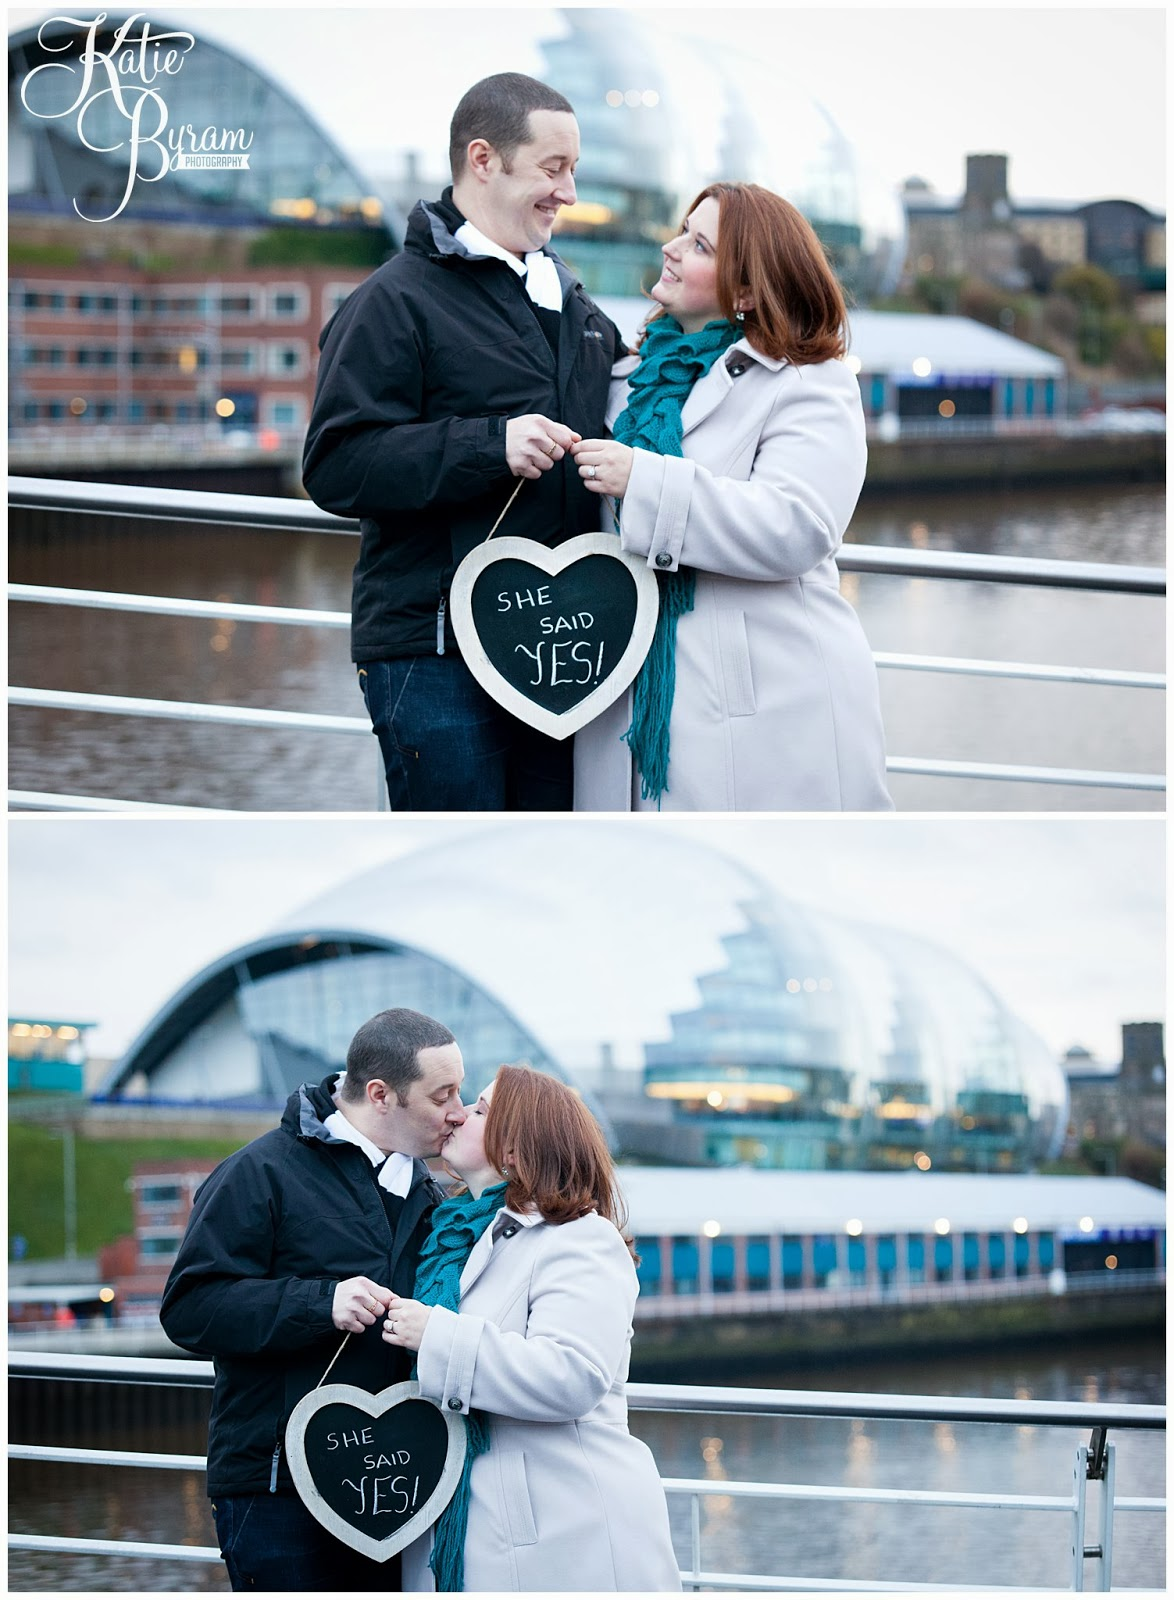 she said yes sign, newcastle quayside engagement, newcastle pre-wedding shoot, newcastle quayside portraits, tyne bride engagement, christmas in newcastle, fenwicks window, millenium bridge engagement, pitcher and piano newcastle, olive and bean cafe, the baltic wedding, newcastle wedding photographer, katie byram photography